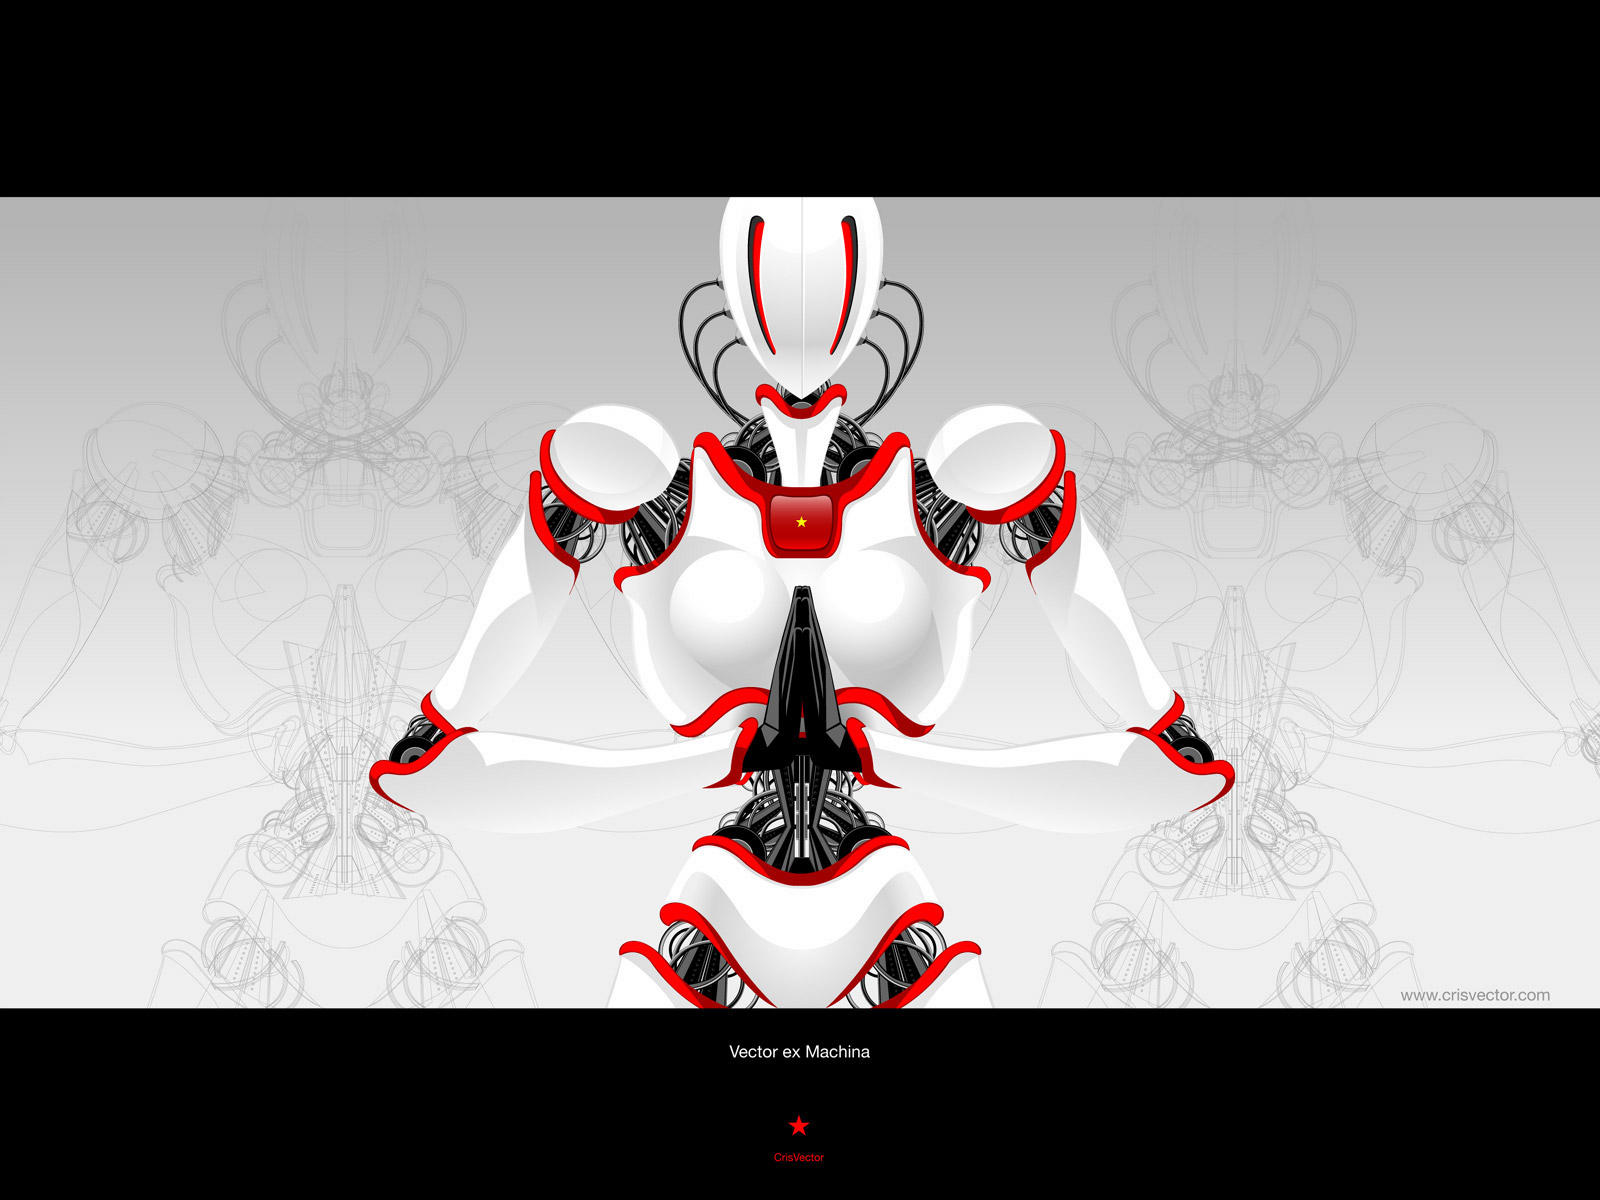 Vector Ex Machina by CrisVector